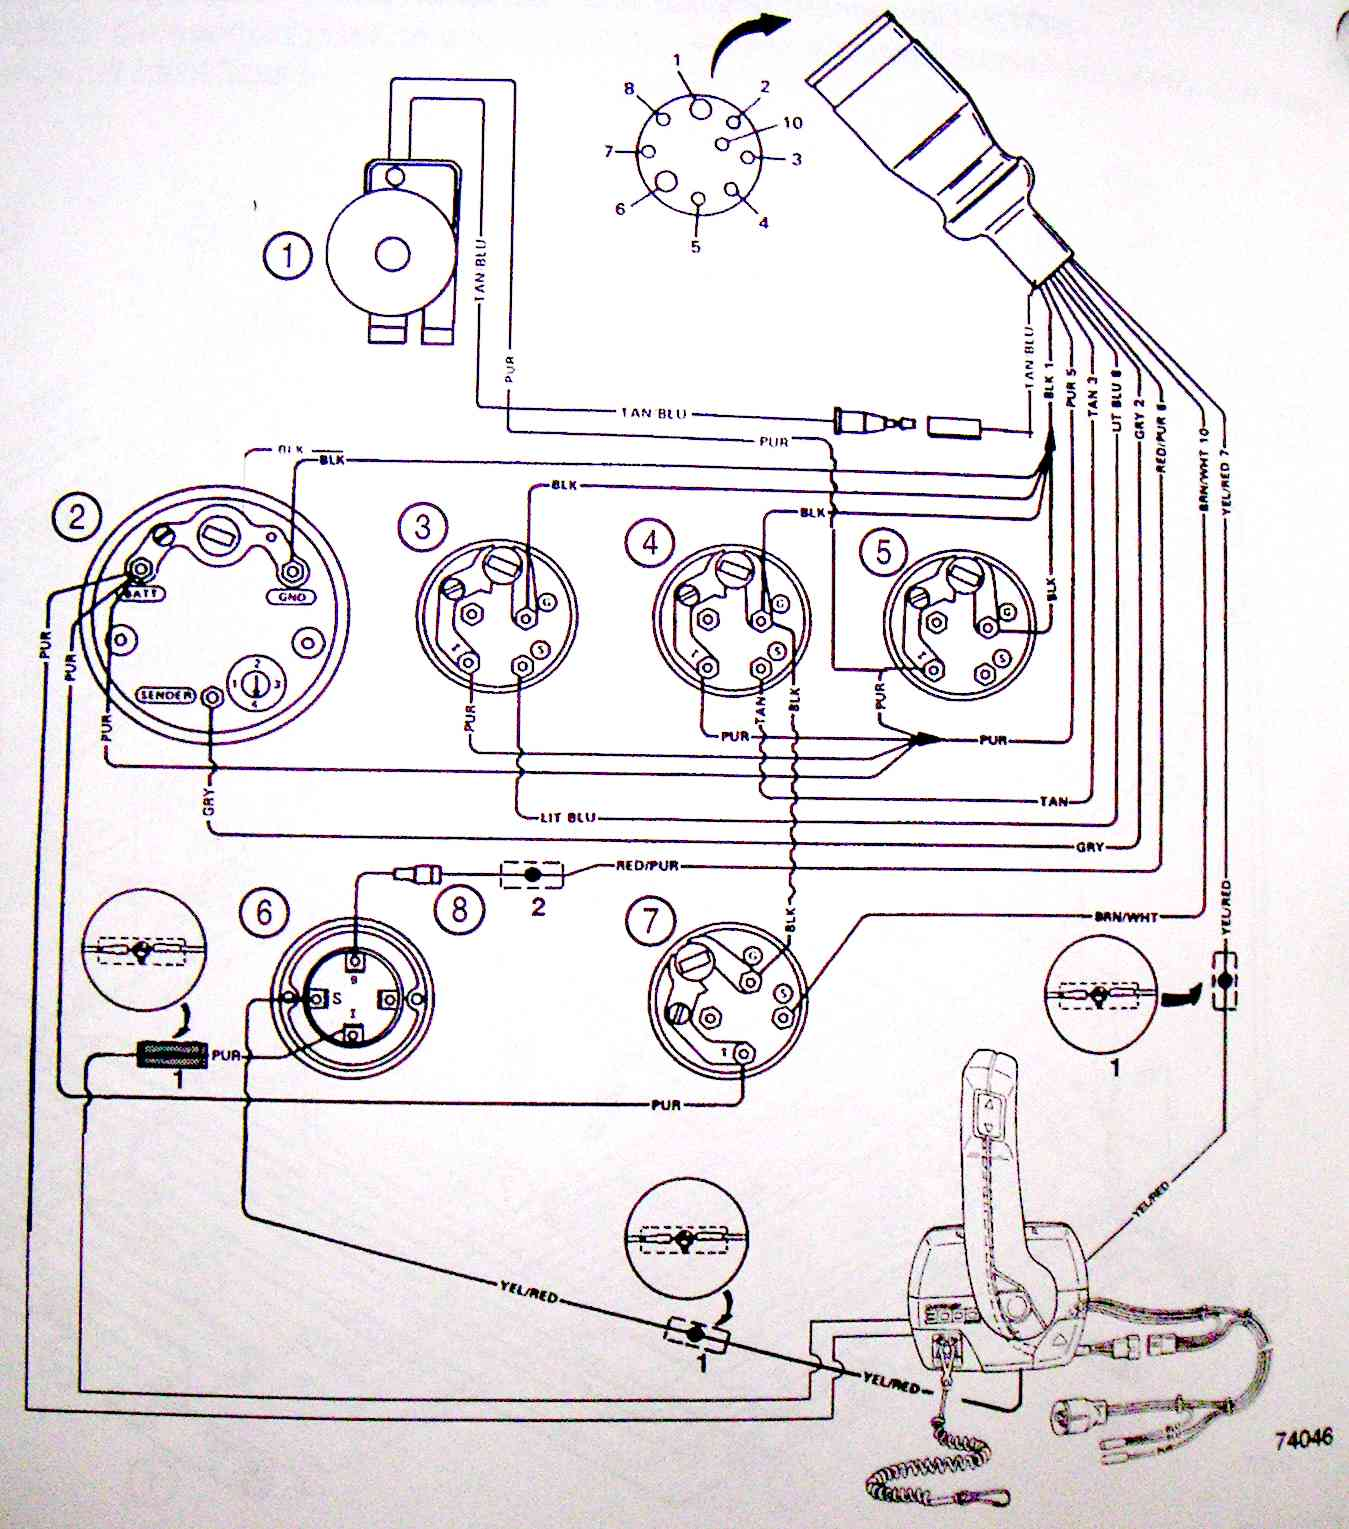 3 0 Mercruiser Engine Wiring Diagram Reading Online Electrical System Diagrams Rh 29 Samovila De 30 Starter